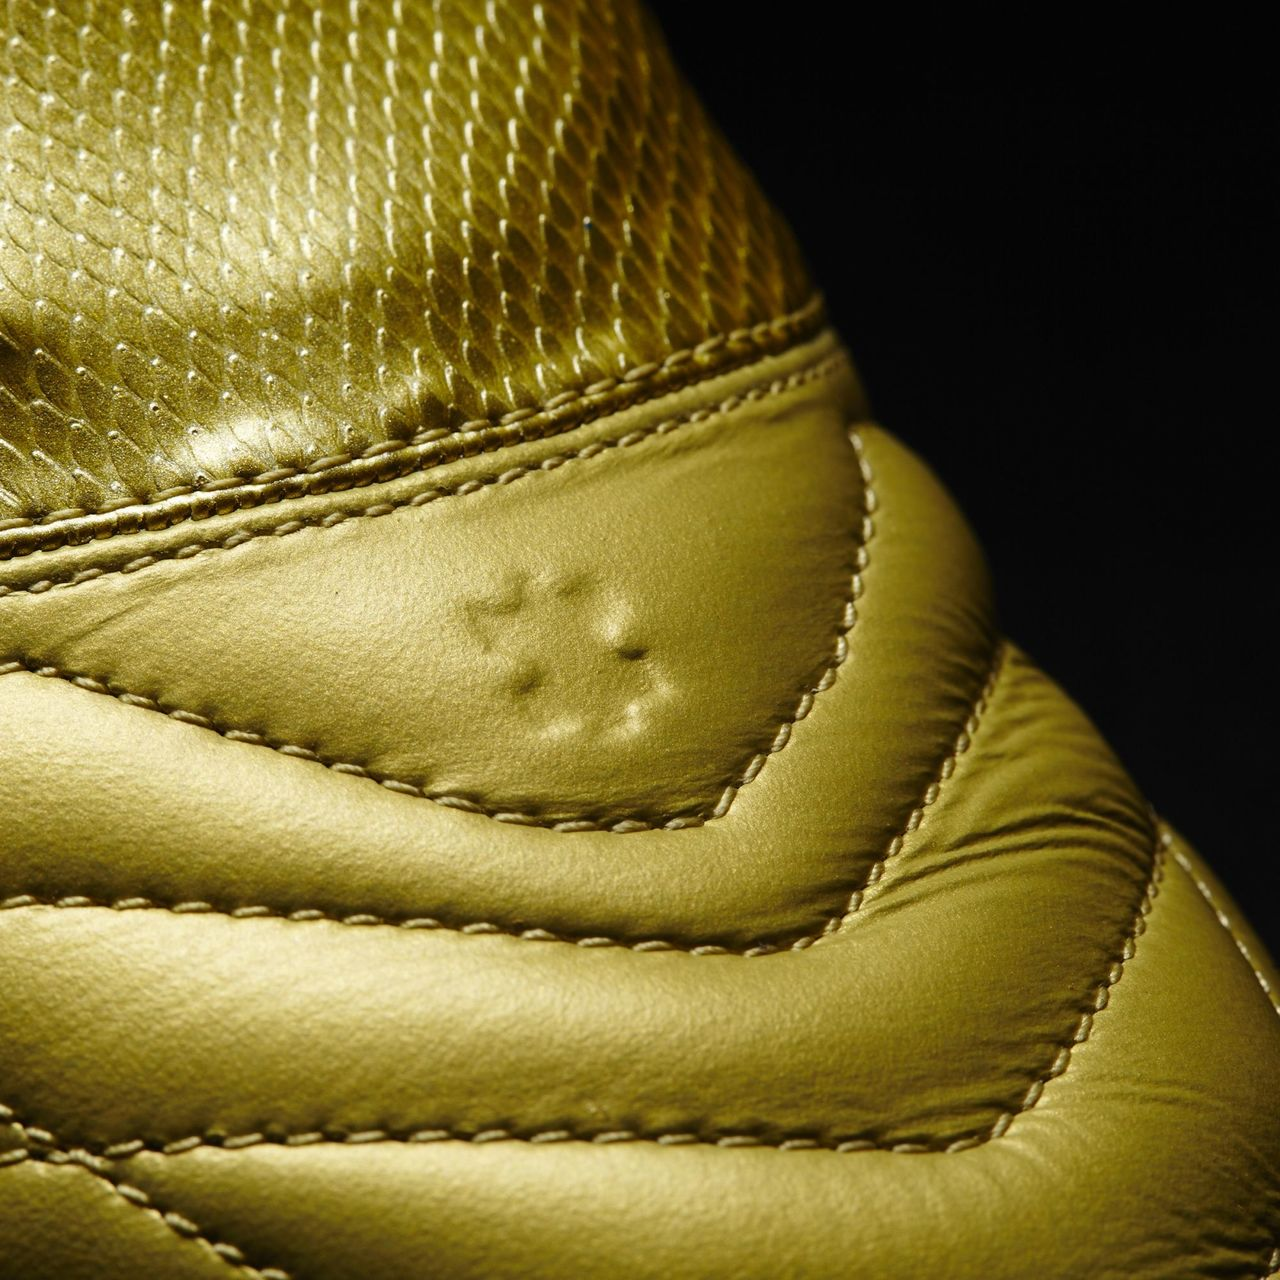 d4636a94d ... Click to enlarge image  adidas_x_16_purechaos_fg_ag_space_craft_gold-metallic_h.jpg